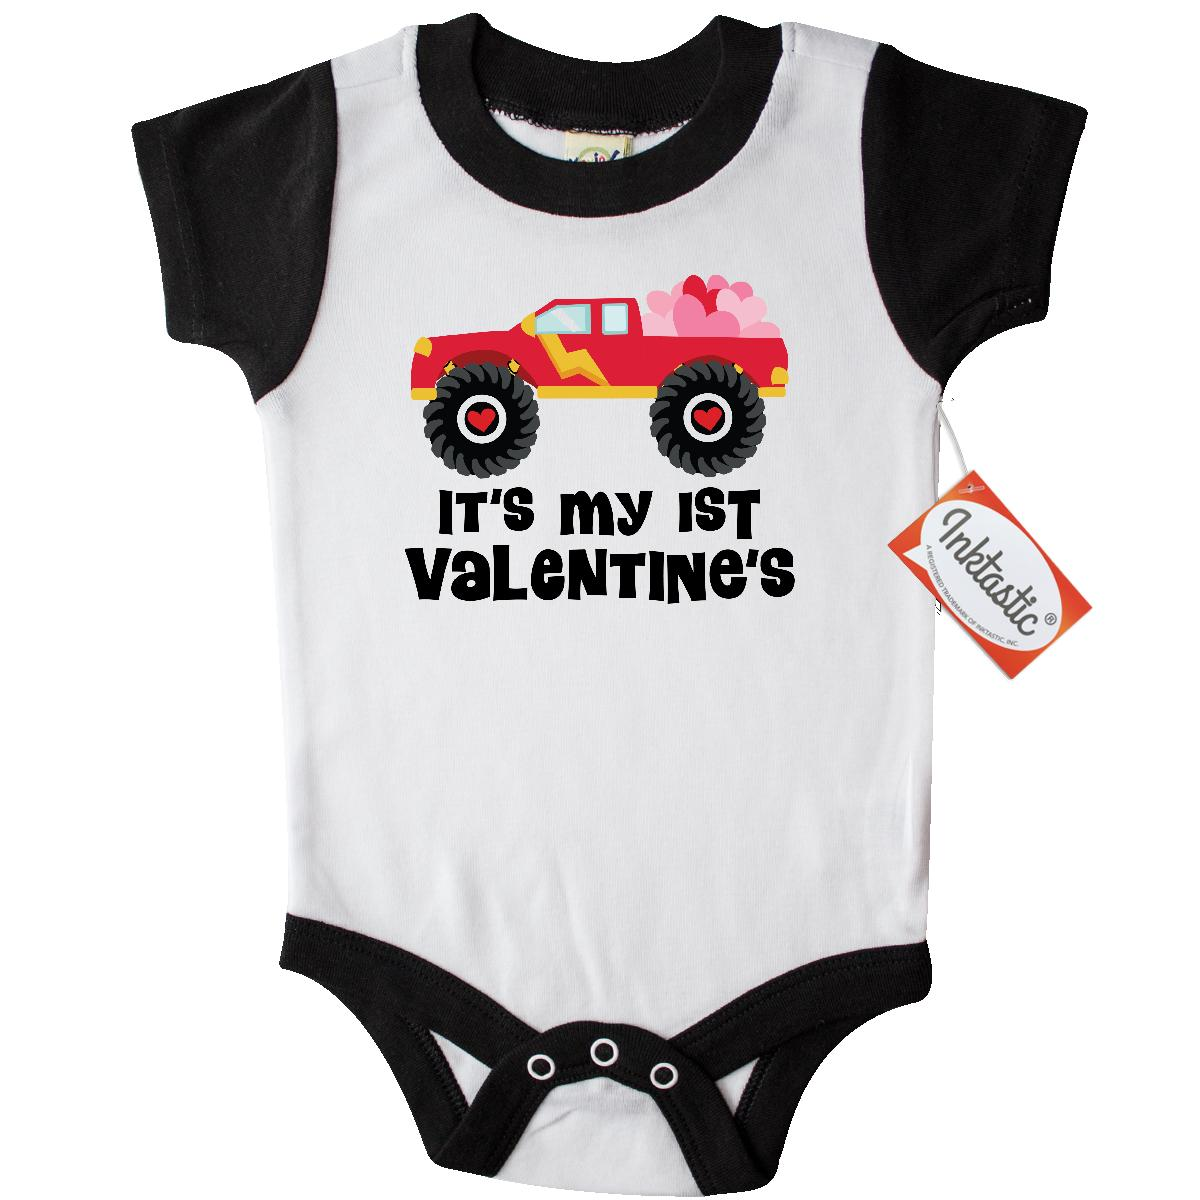 Inktastic 1st Valentine's Day Monster Truck Infant Creeper Baby Bodysuit babys first valentine hearts cute gift idea for one-piece hws